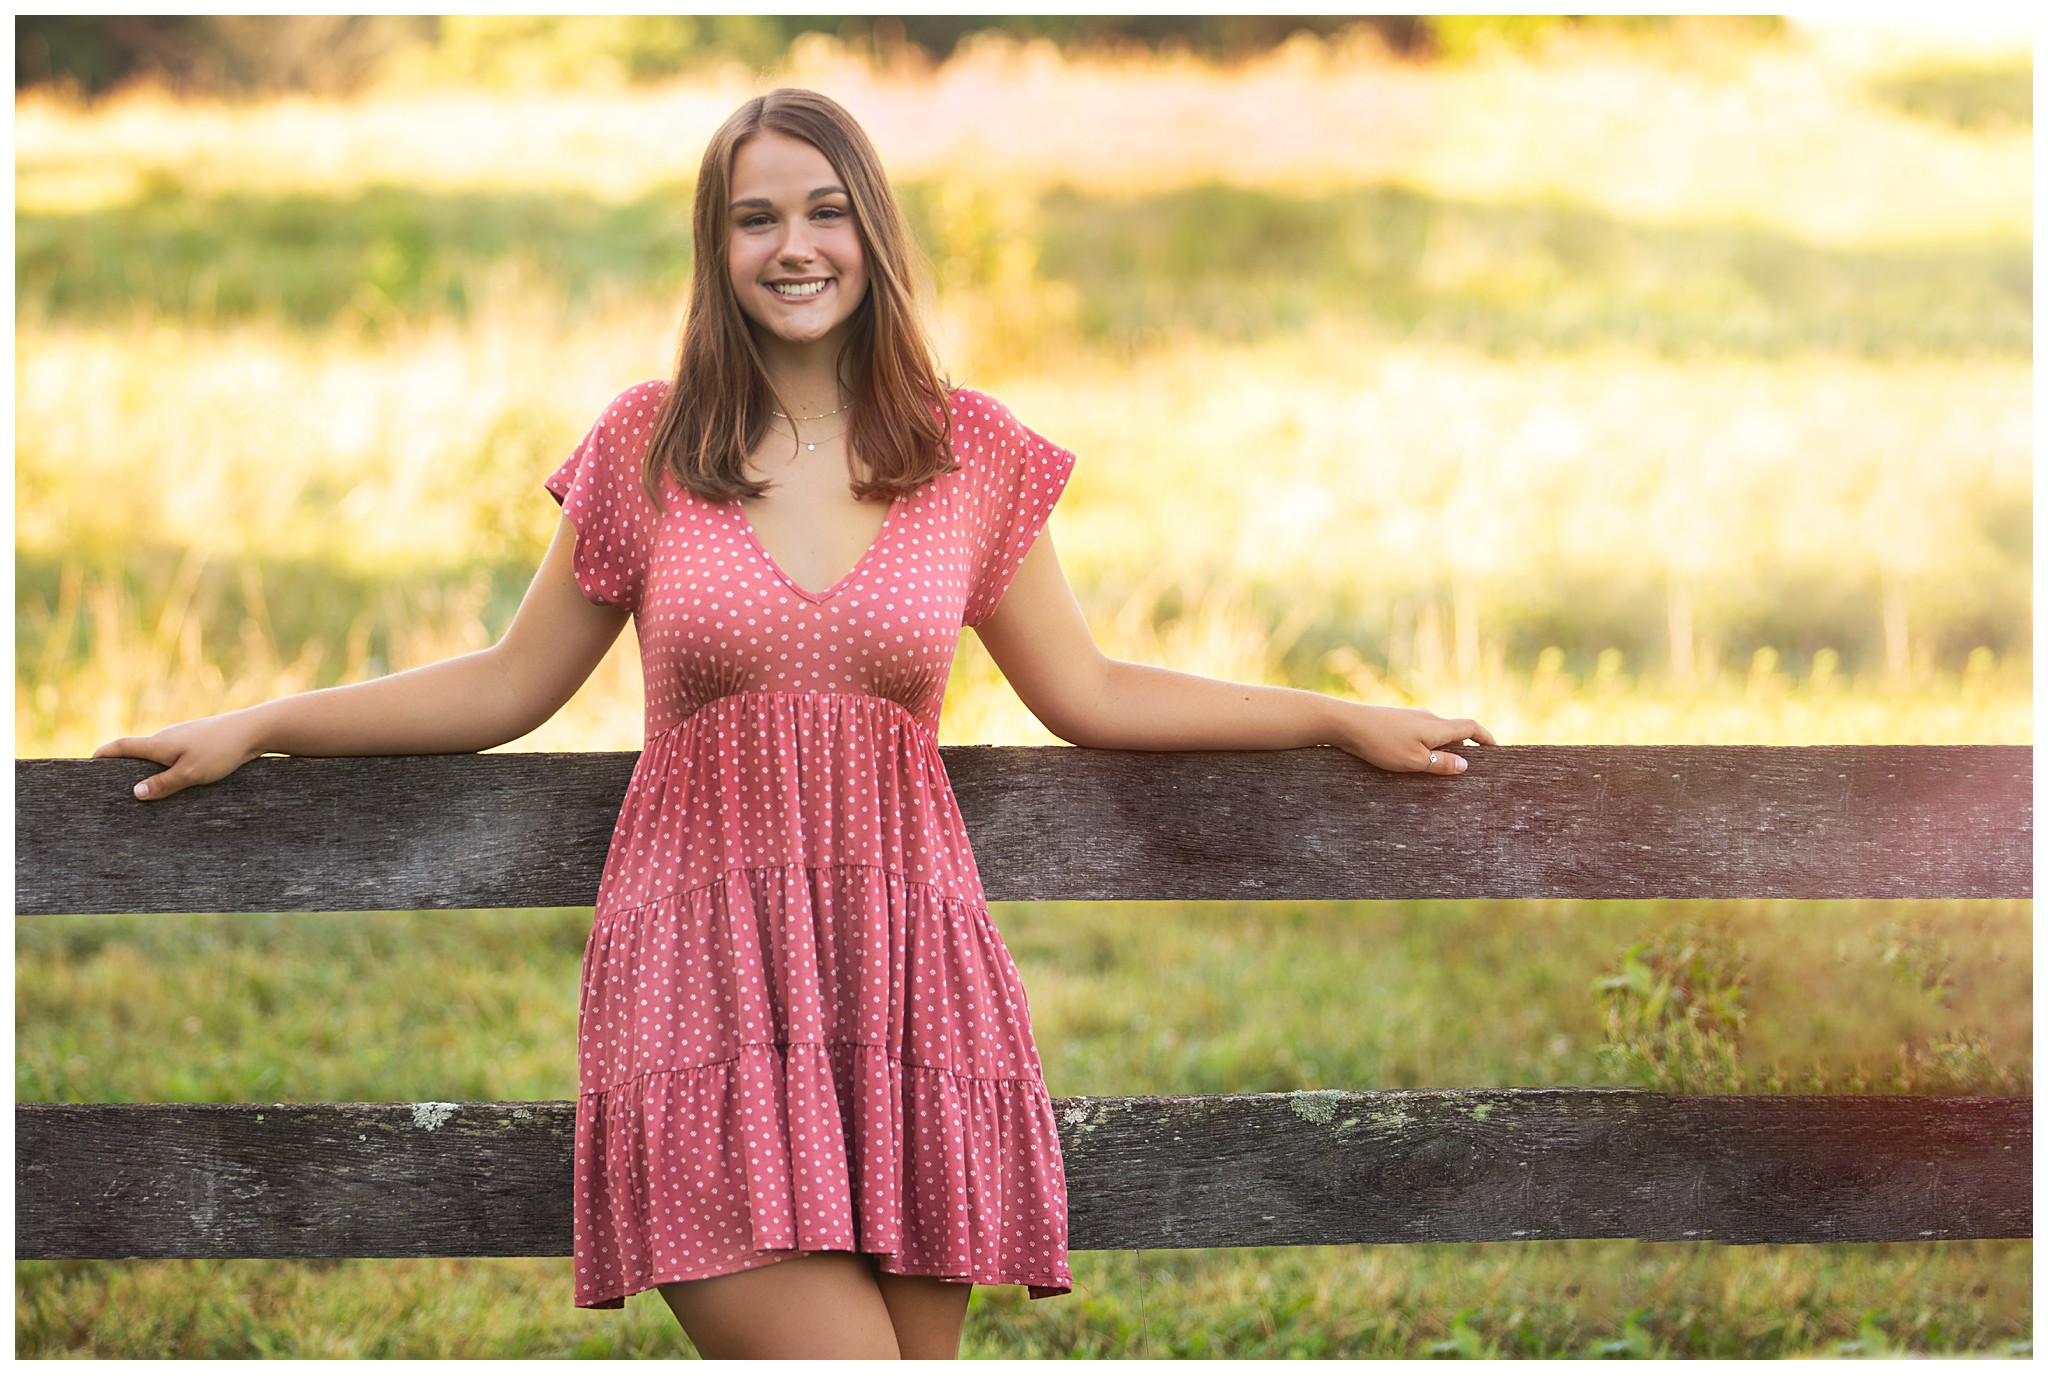 Blackacre Farm Senior Photo jpg